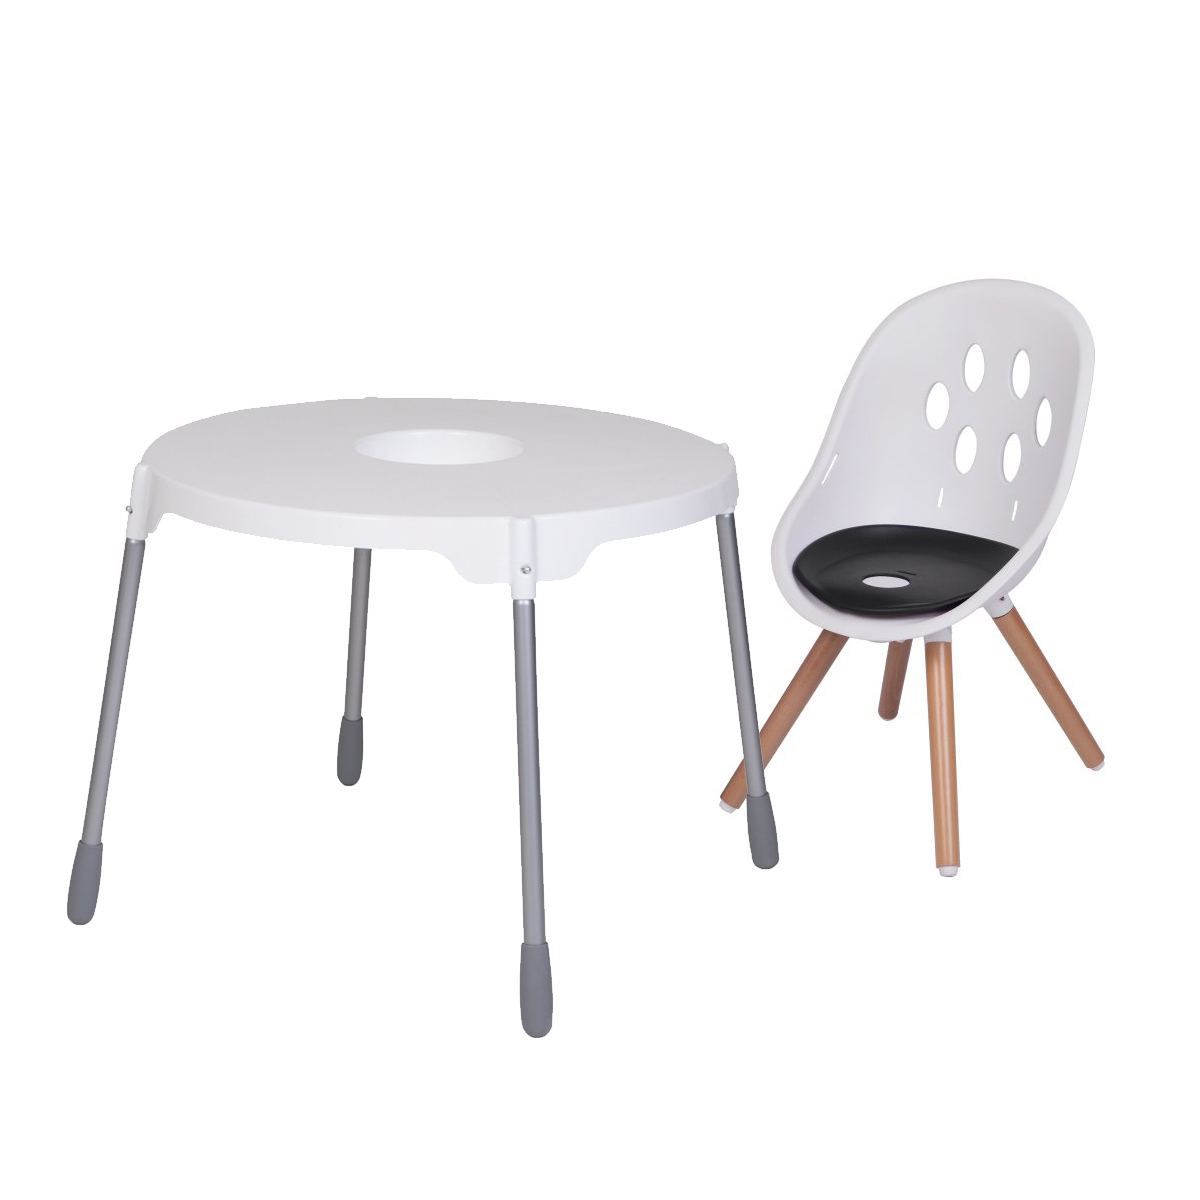 https://cdn.accentuate.io/4711297450089/19119322628201/phil_and_teds_poppy_wood_leg_high_chair_to_my_chair_dual_modes_1_combo-v1630981622100.jpg?1200x1200